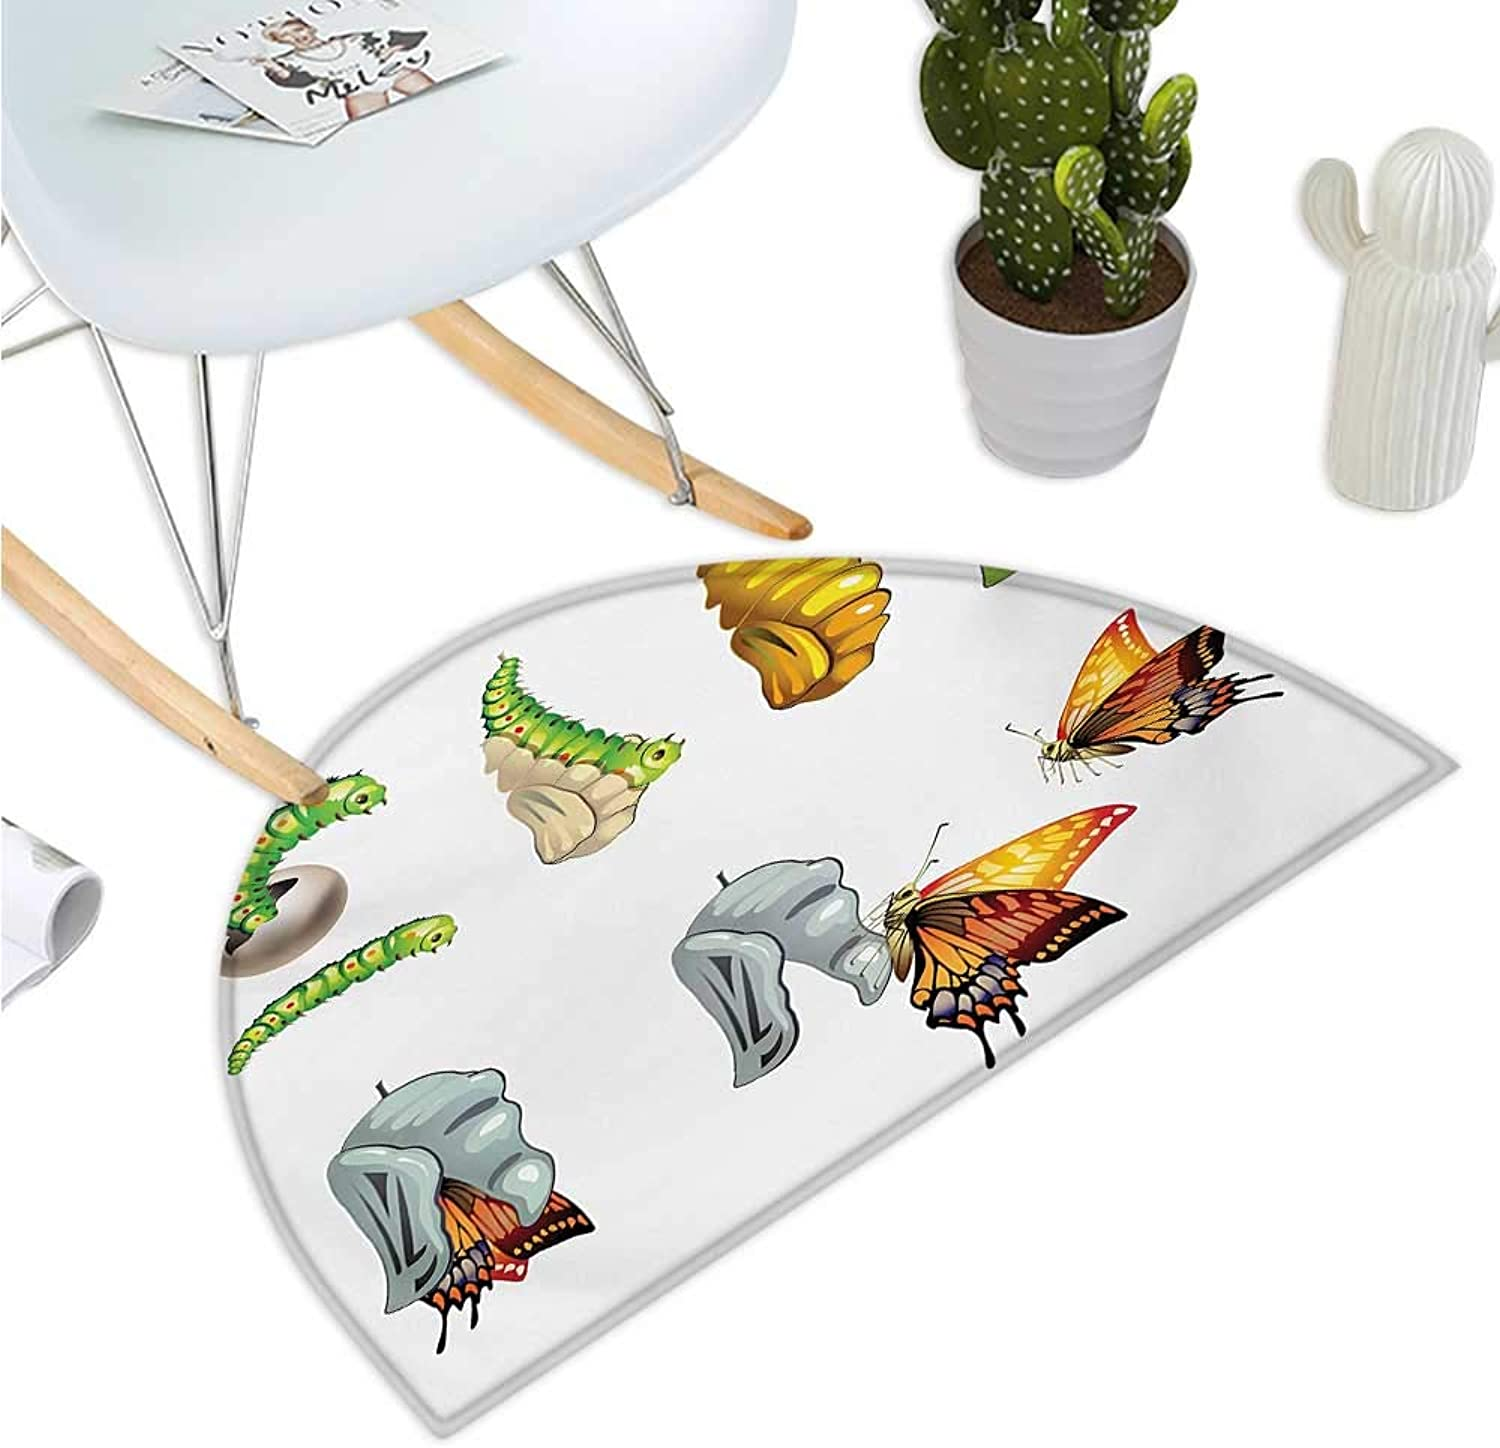 Butterfly Semicircular Cushion Butterfly Stages with The Cocoon Life Cycle Nature Print Artistic Illustration Bathroom Mat H 47.2  xD 70.8  Multicolor